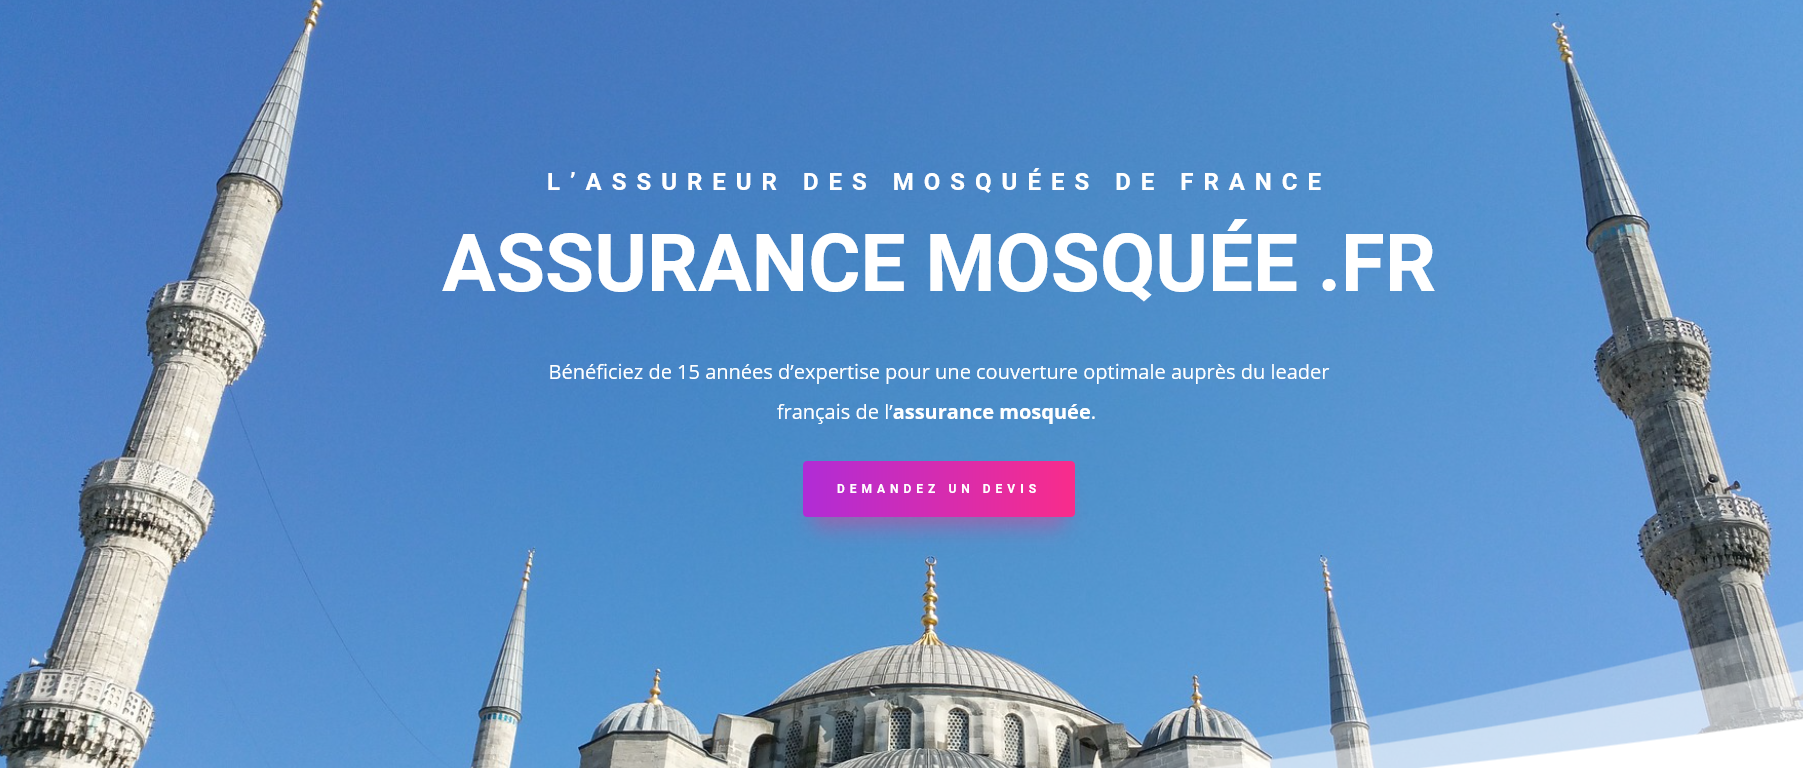 Assurance mosquees